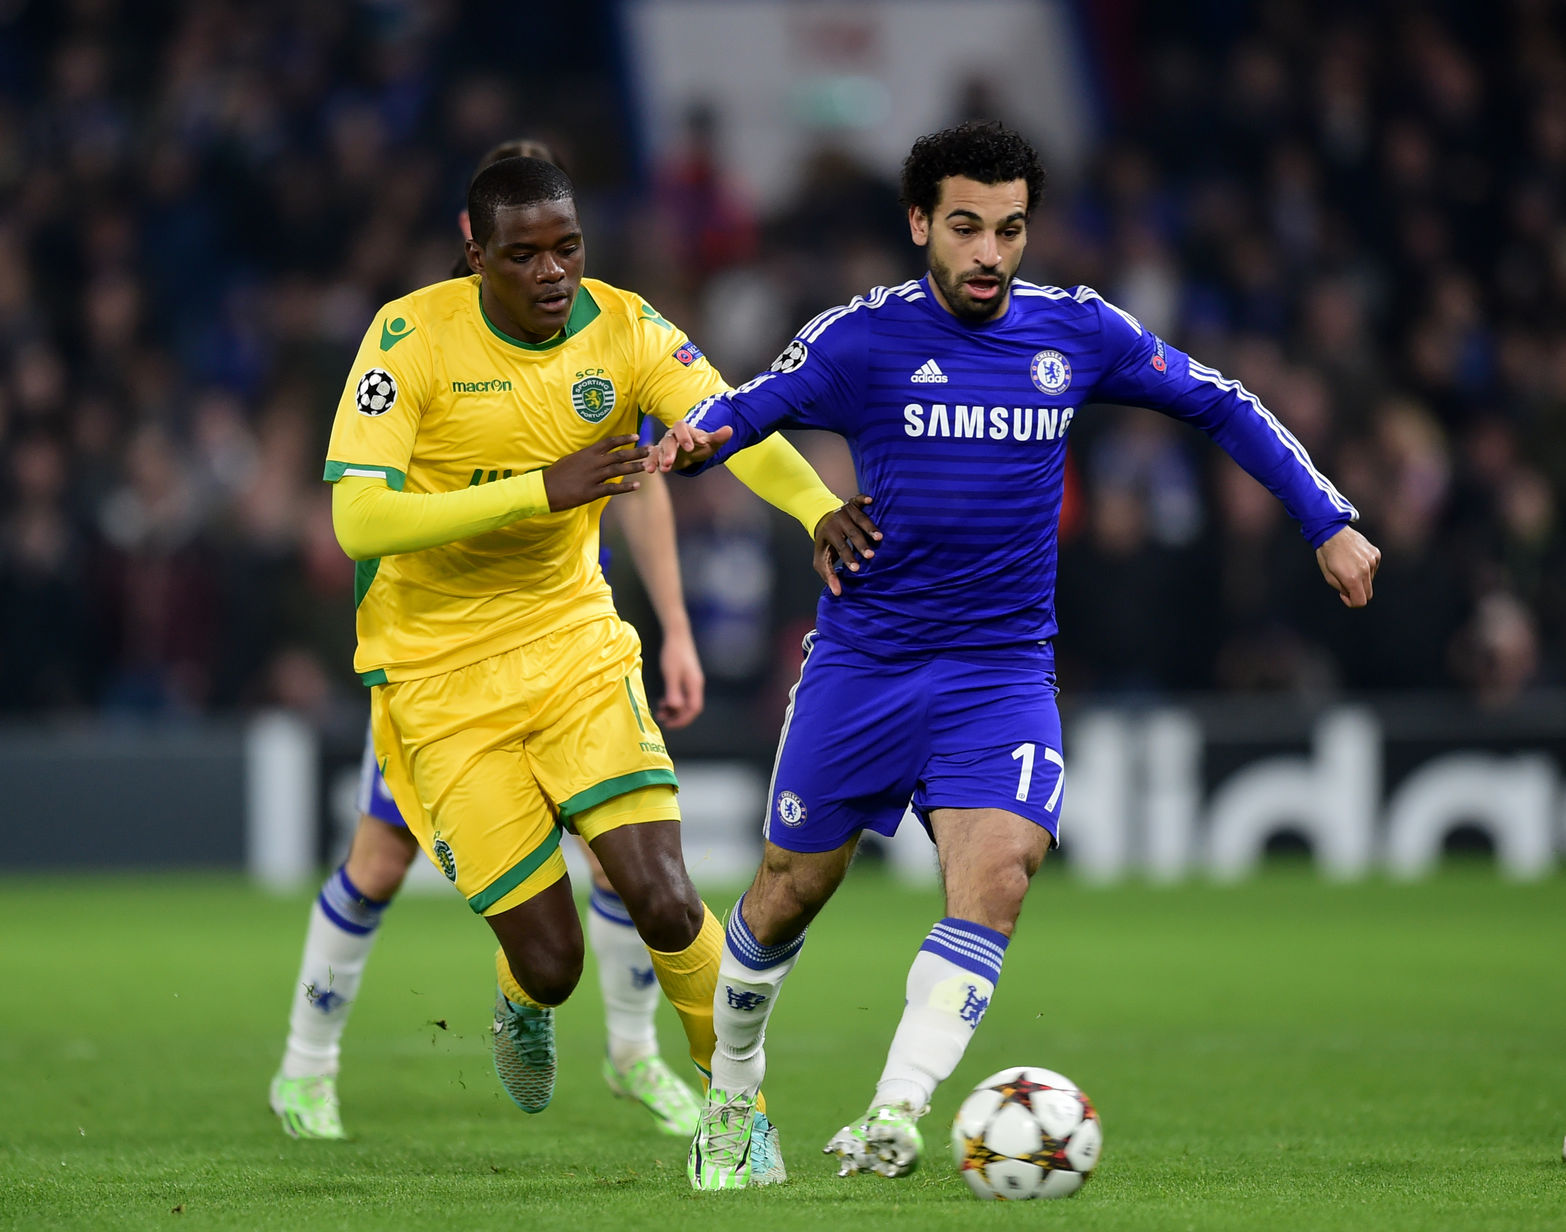 Sporting Lisbon's Silva William Carvalho (left) and Chelsea's Mohamed Salah battle for the ball during the UEFA Champions League Group G match at Stamford Bridge, London.